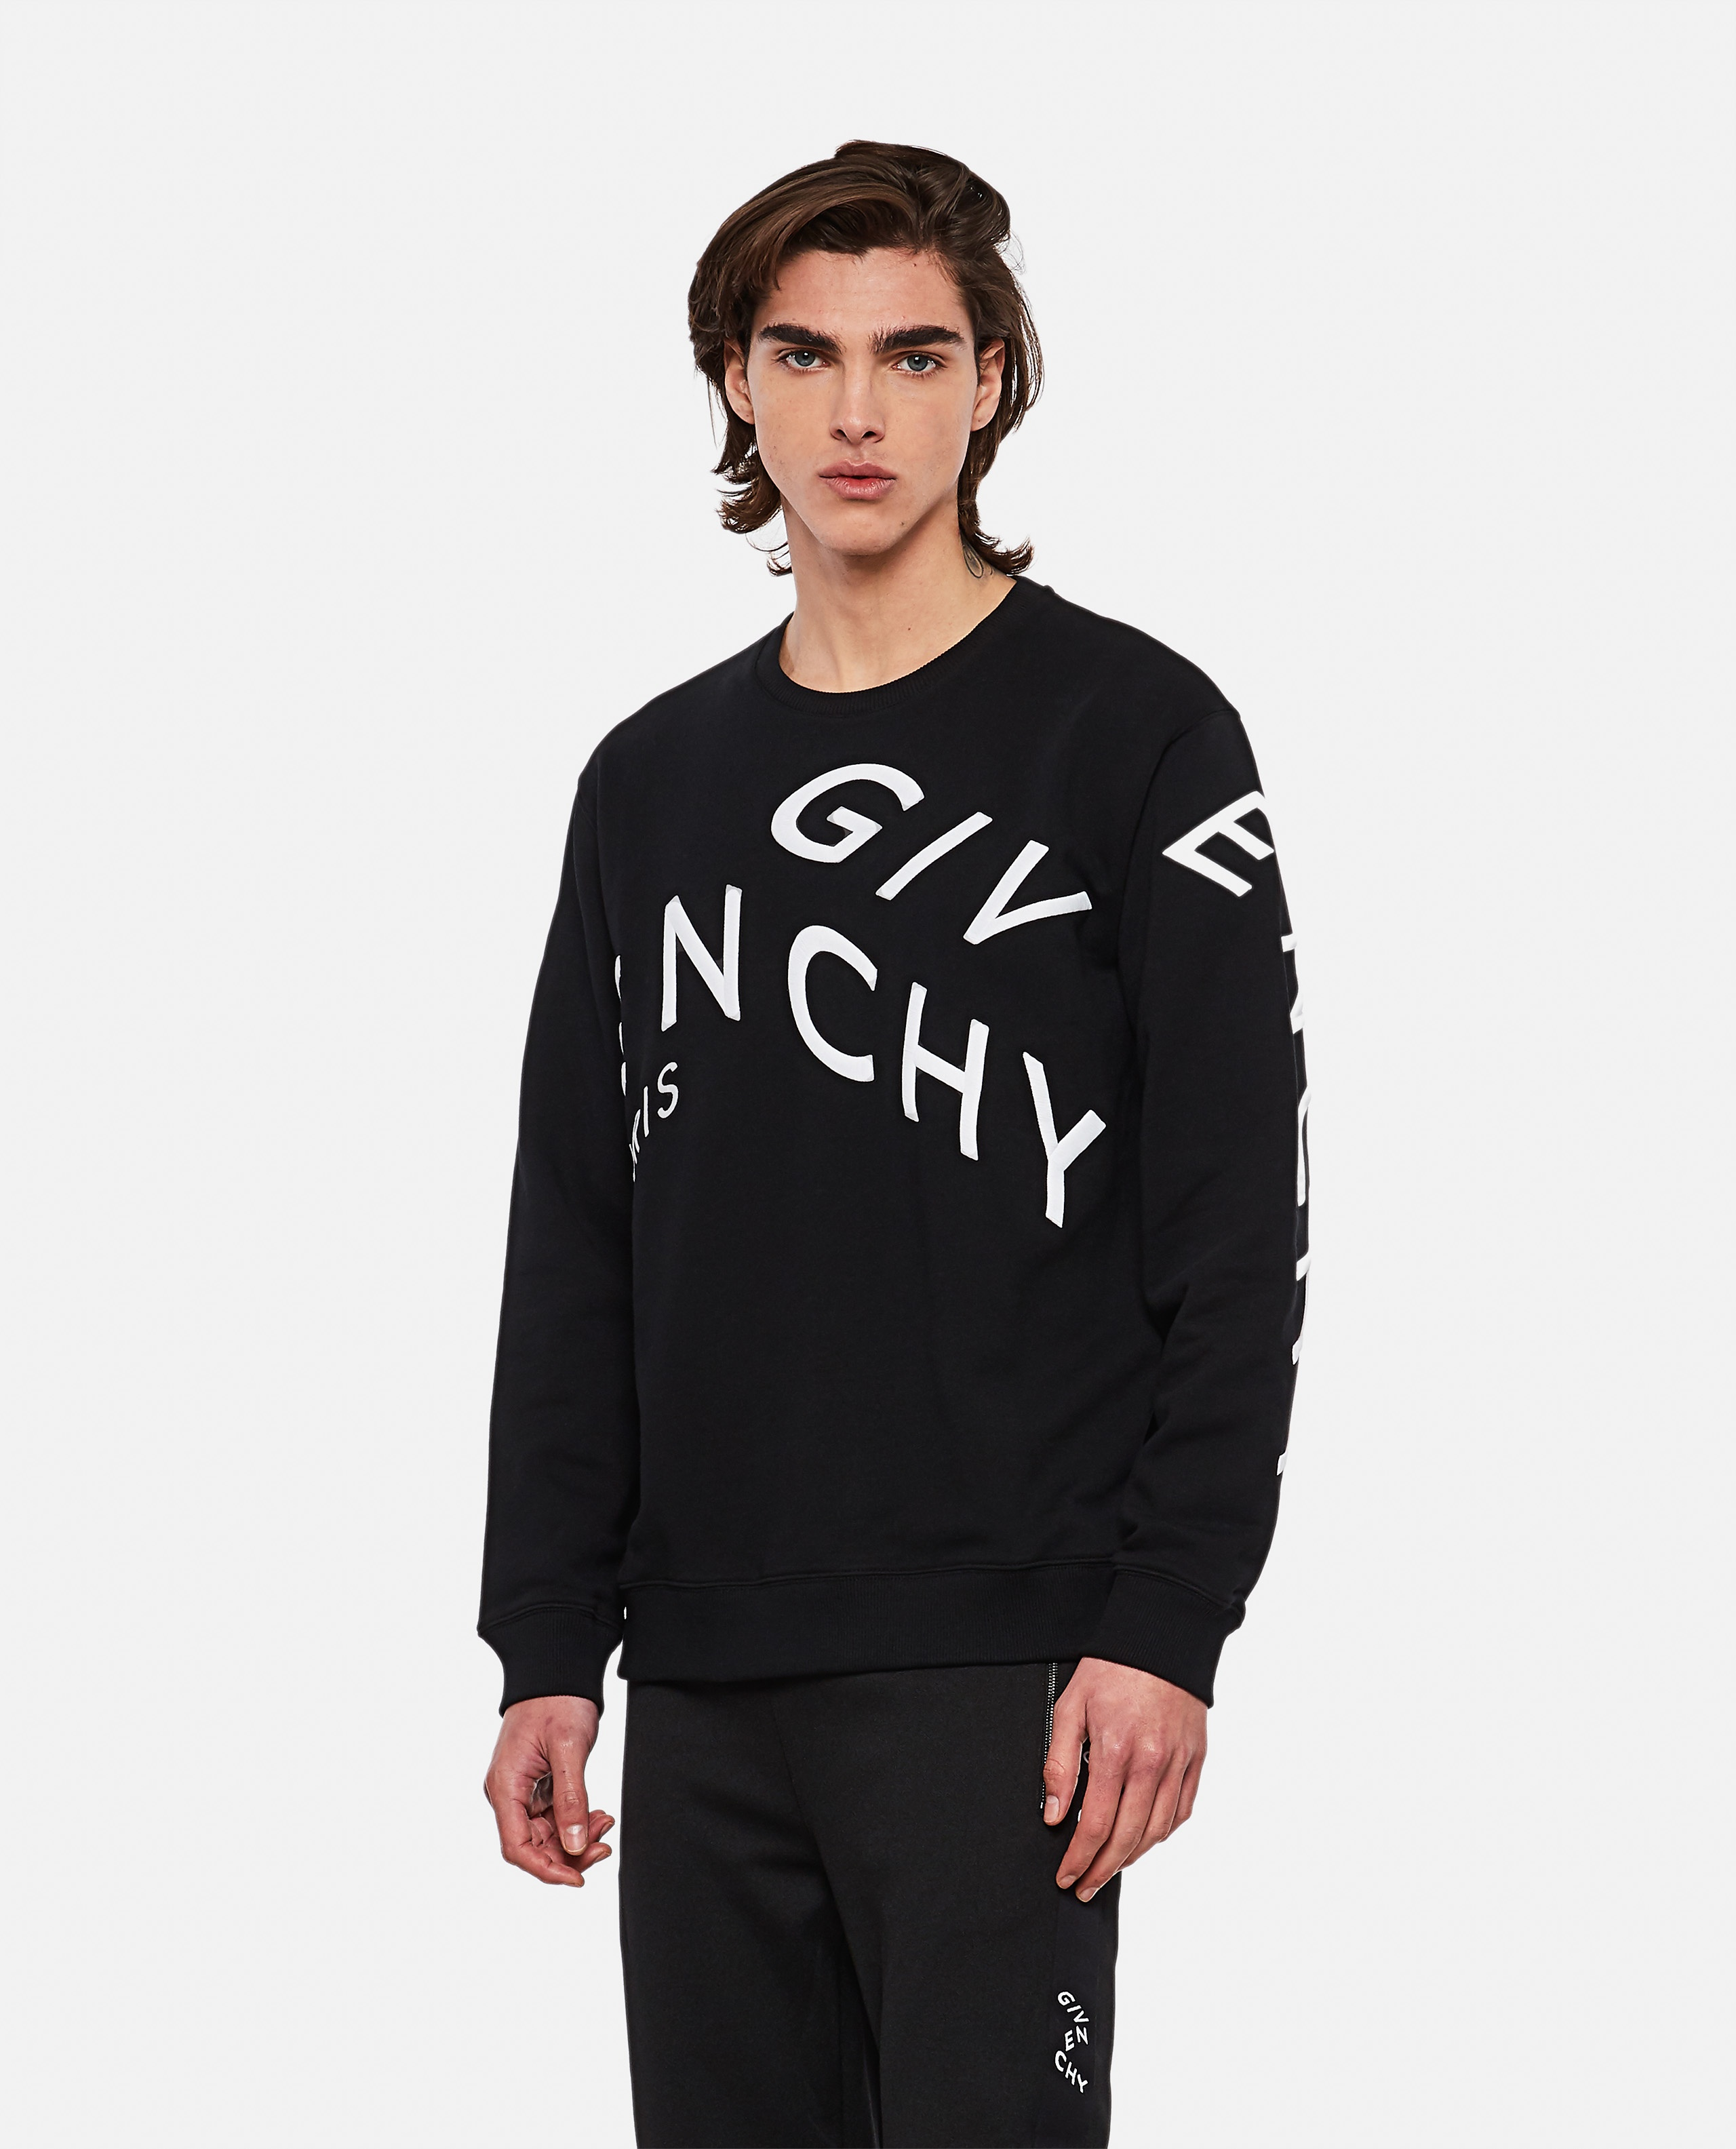 Refracted sweatshirt with embroidery Men Givenchy 000302000044348 1